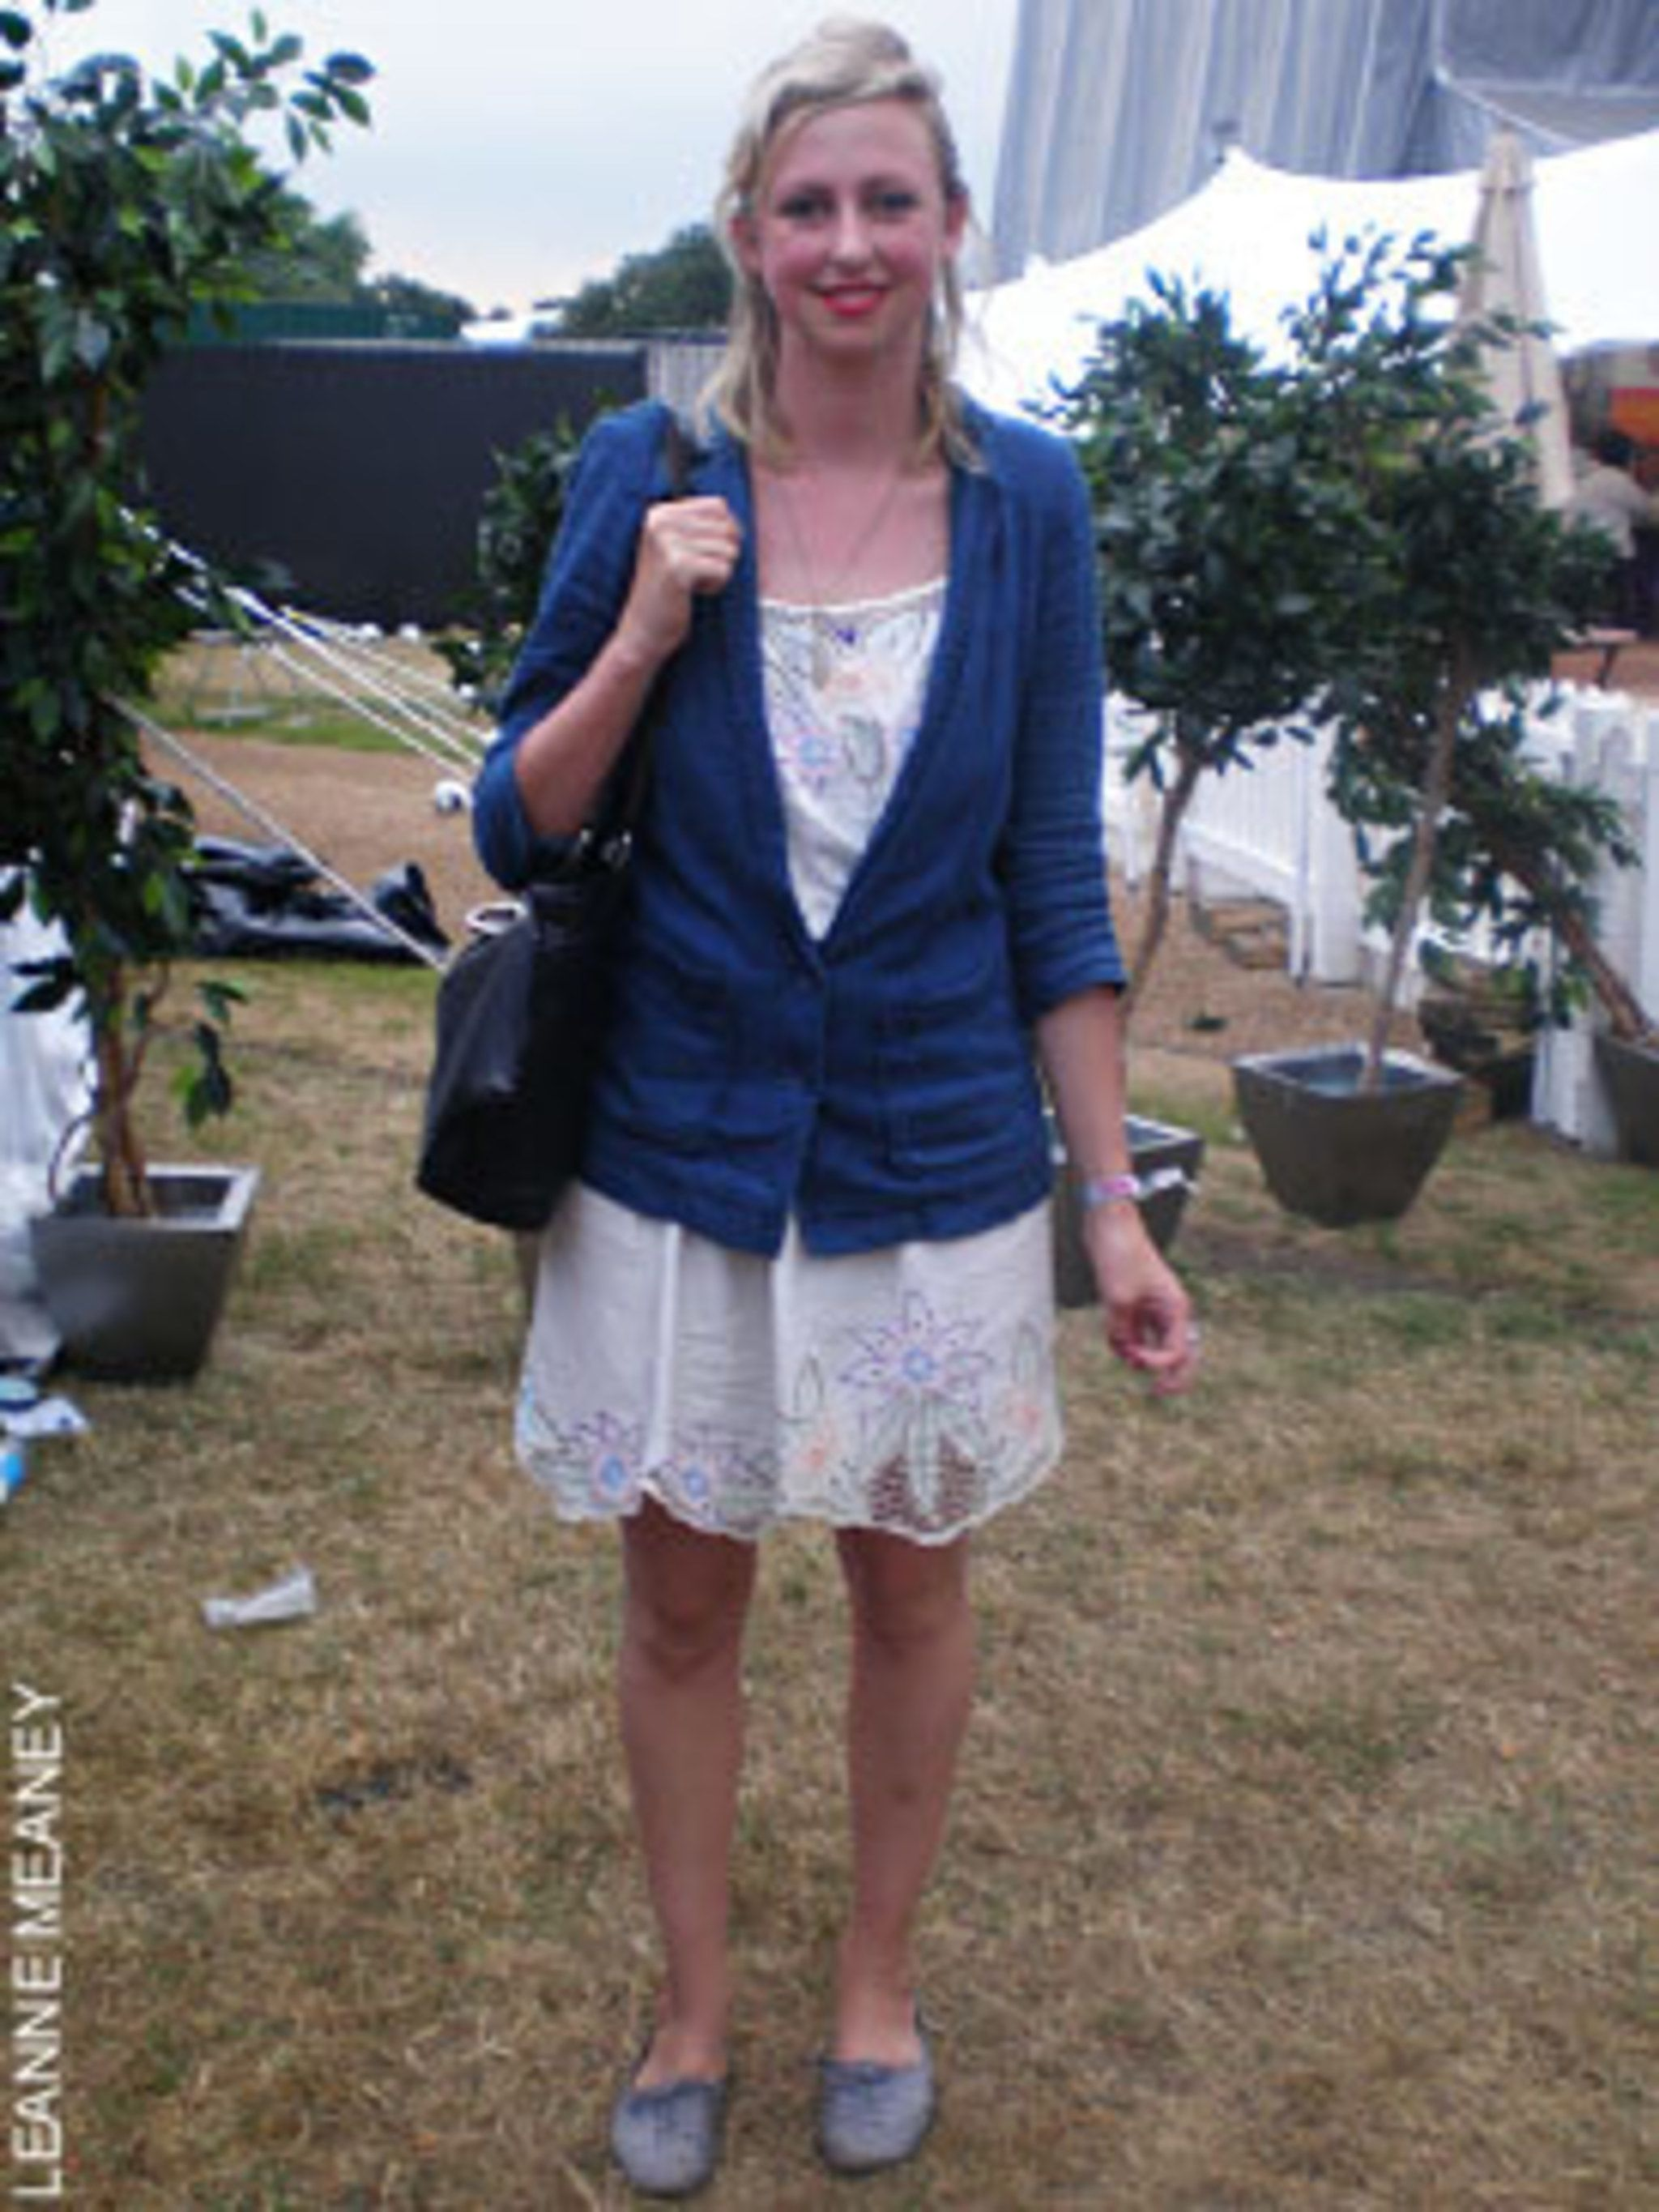 <p>Alice Dunseath, 24, film maker, wearing shoes, dress and jacket all Topshop, and a vintage handbag</p>